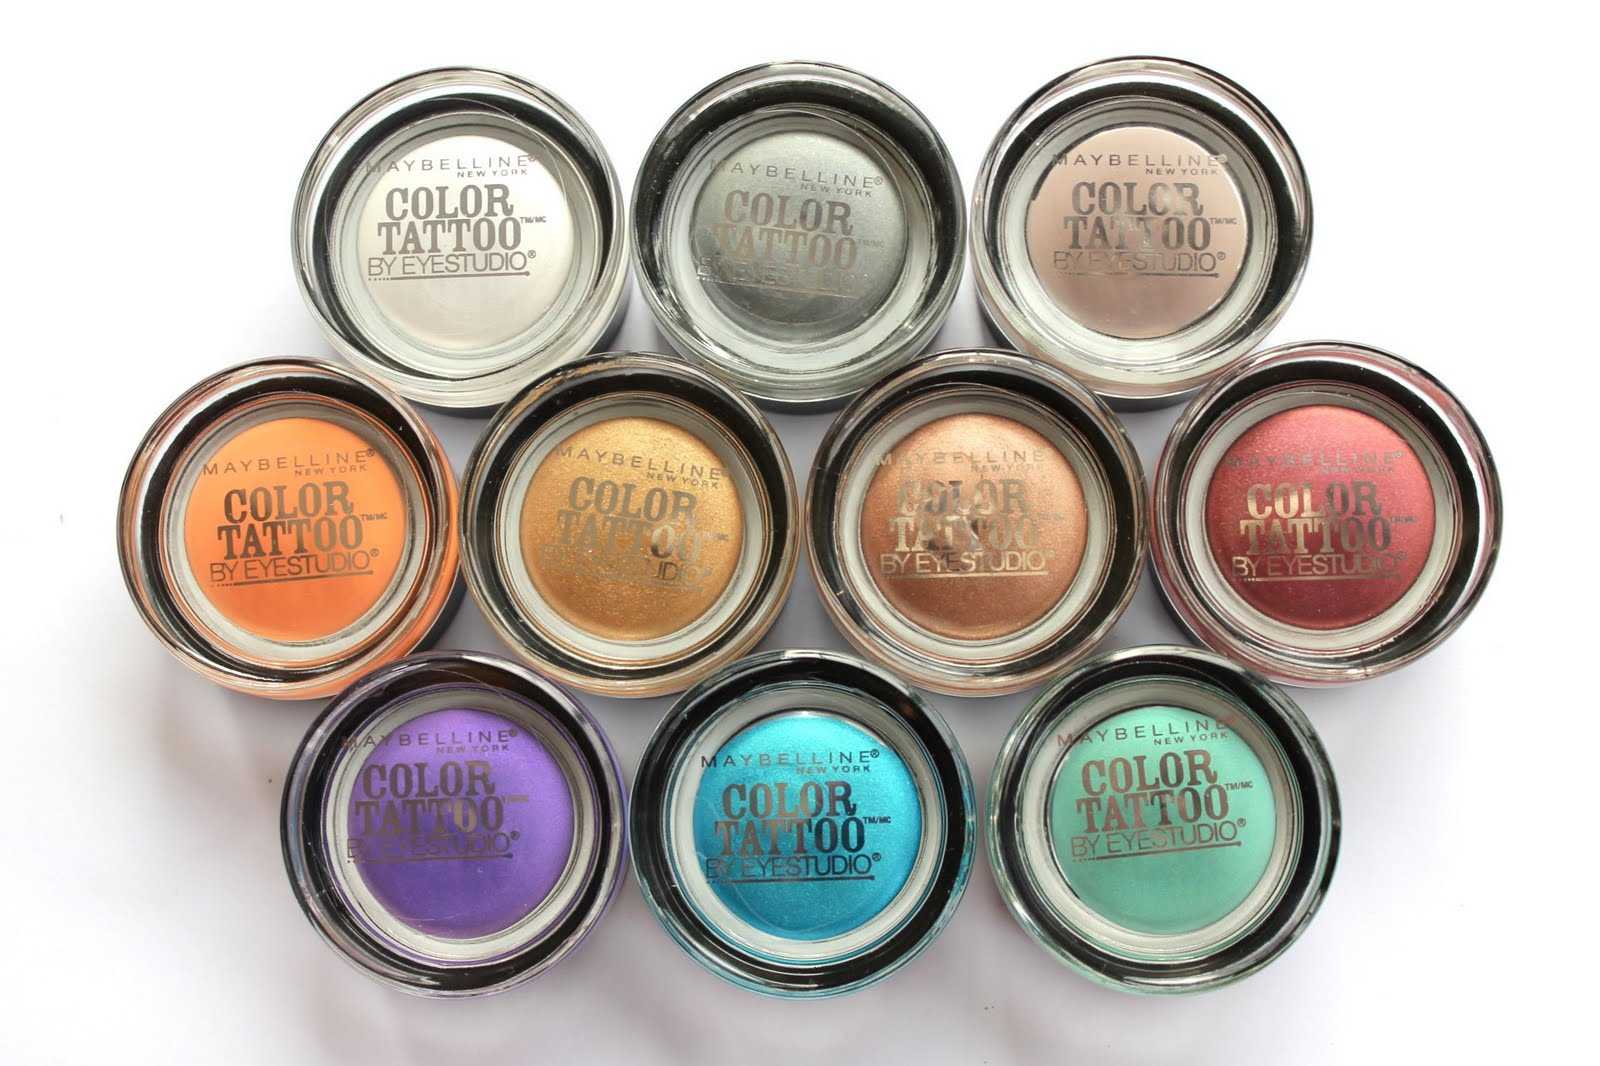 amarixe: beauty and lifestyle blog: Maybelline Color Tattoo Eyeshadows ...